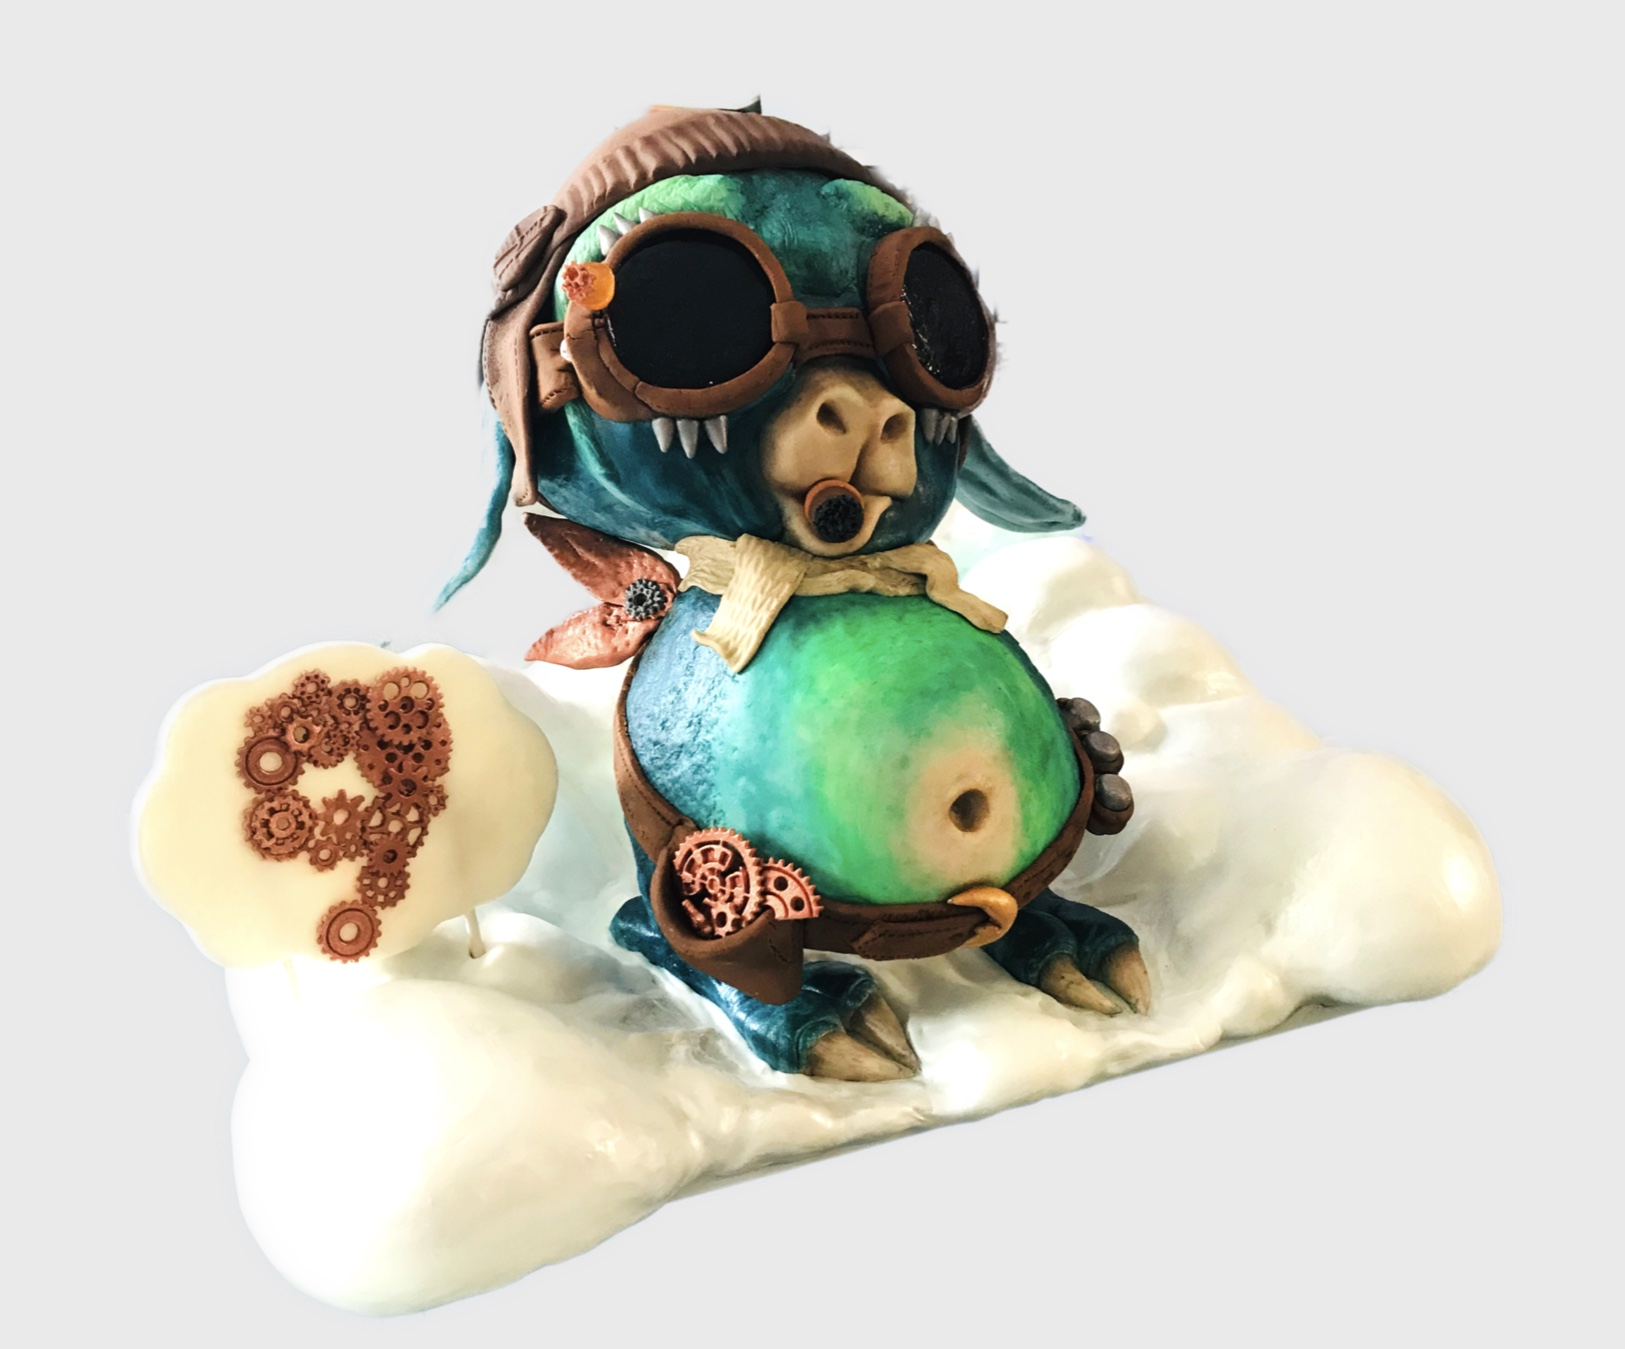 Steampunk Alien Sculpted Cake